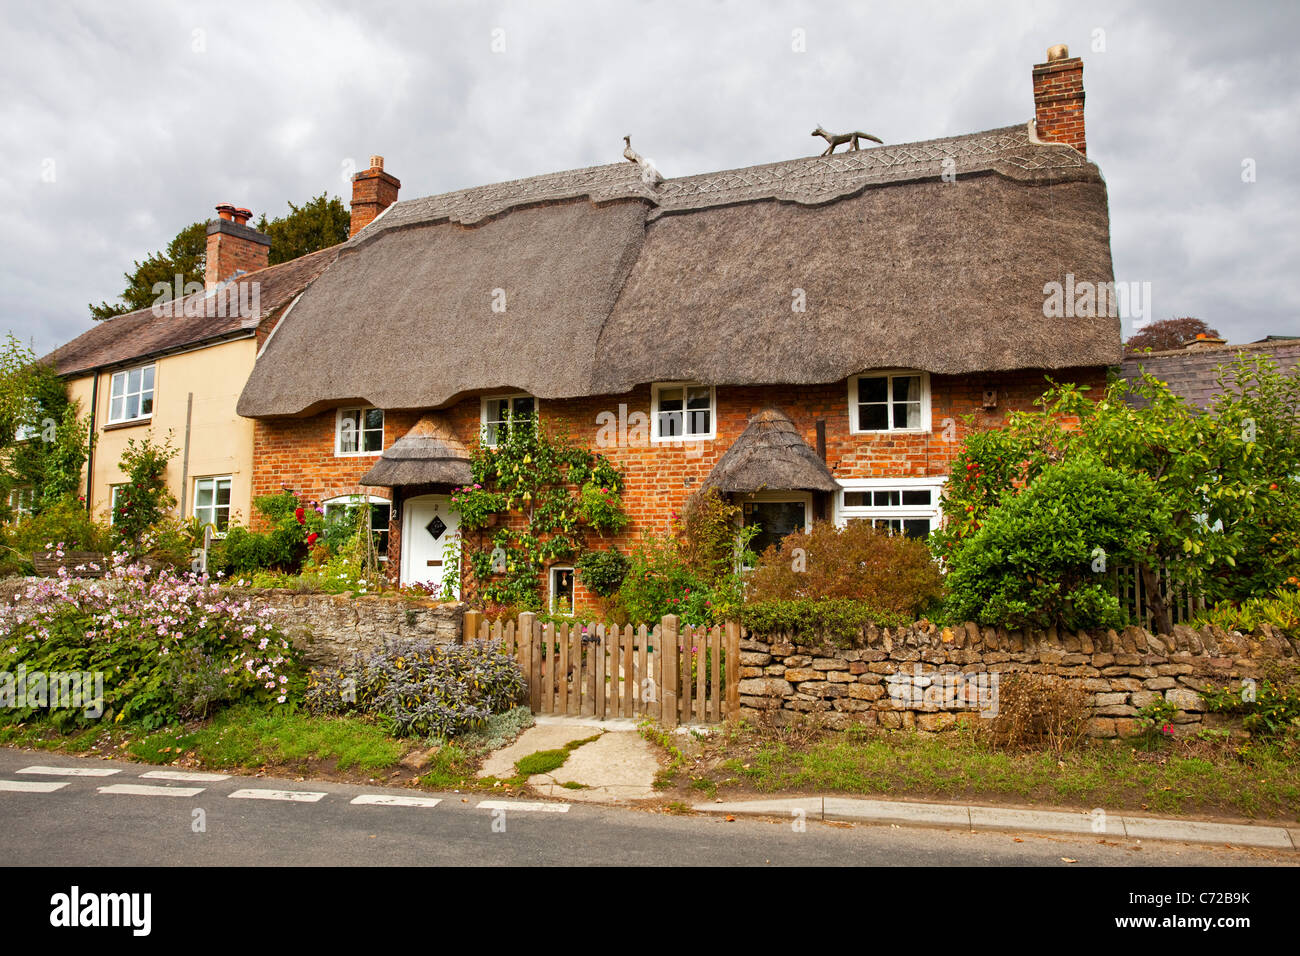 A Thatched cottage in Cropredy Oxfordshire UK - Stock Image